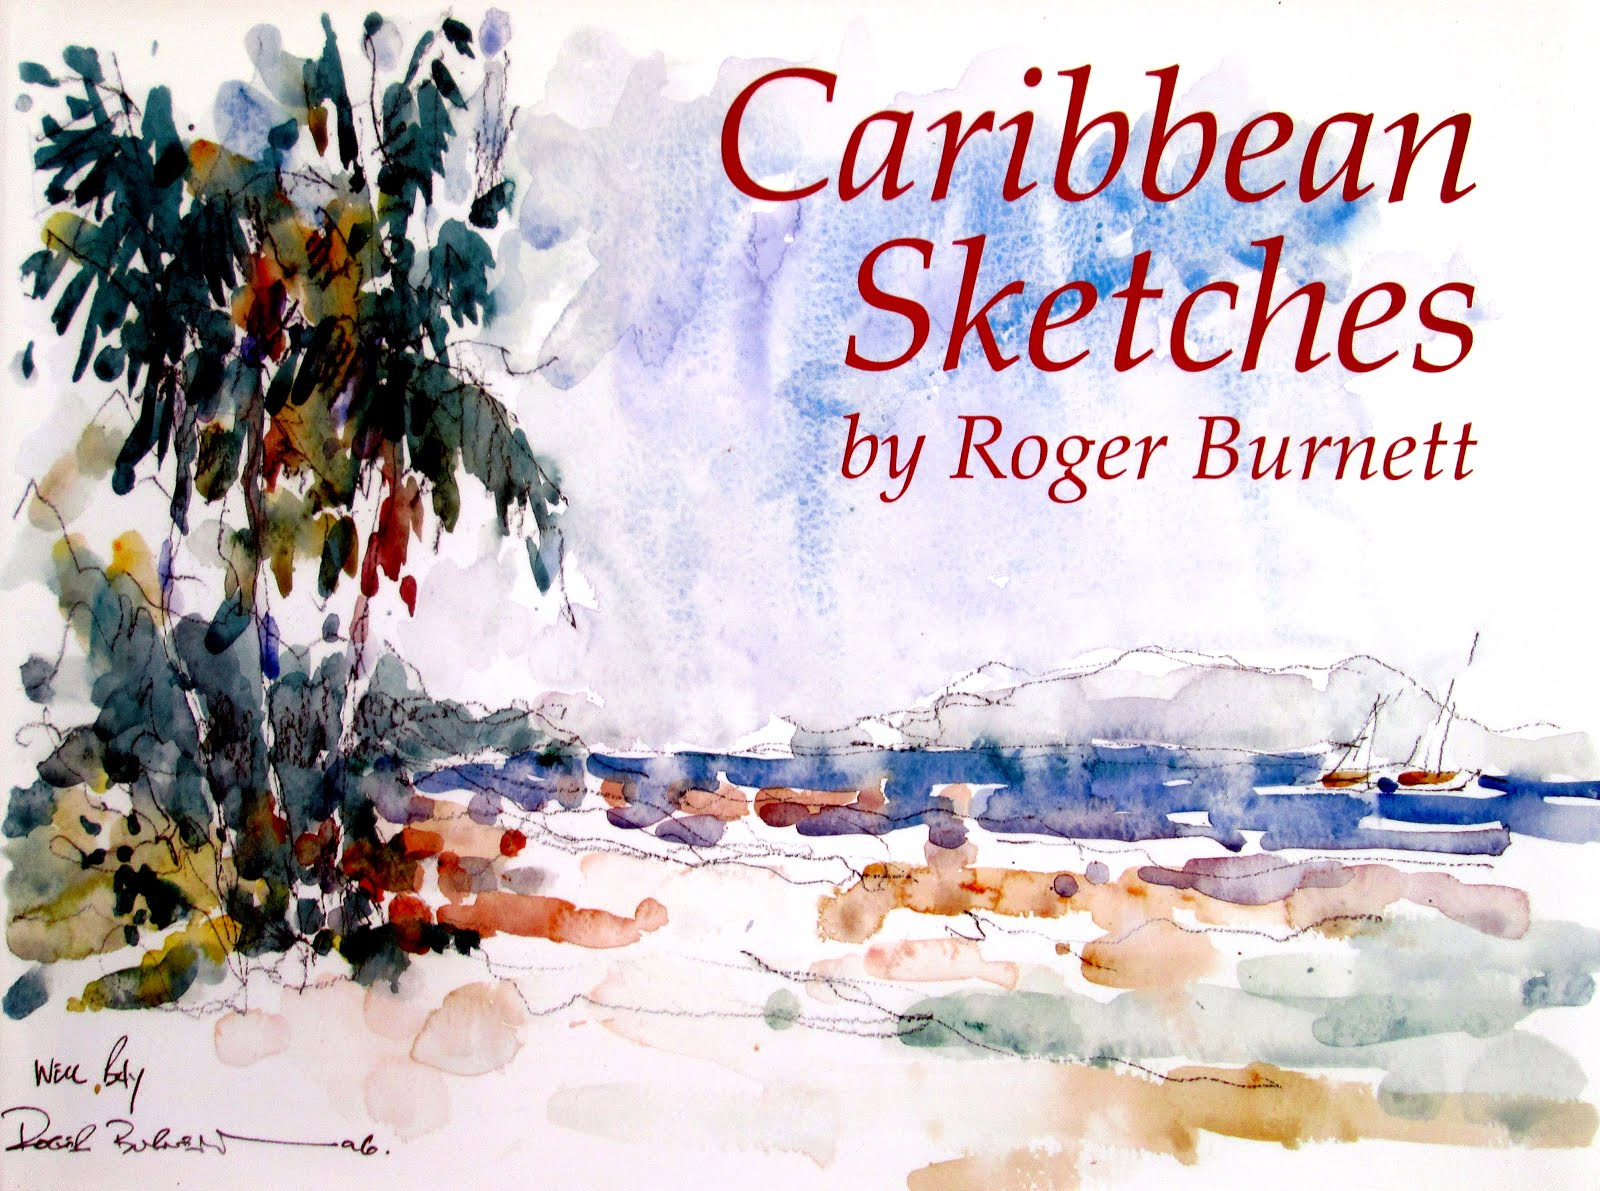 In the 1990's my books Virgin Island Sketches and Caribbean Sketches became a regional best sellers